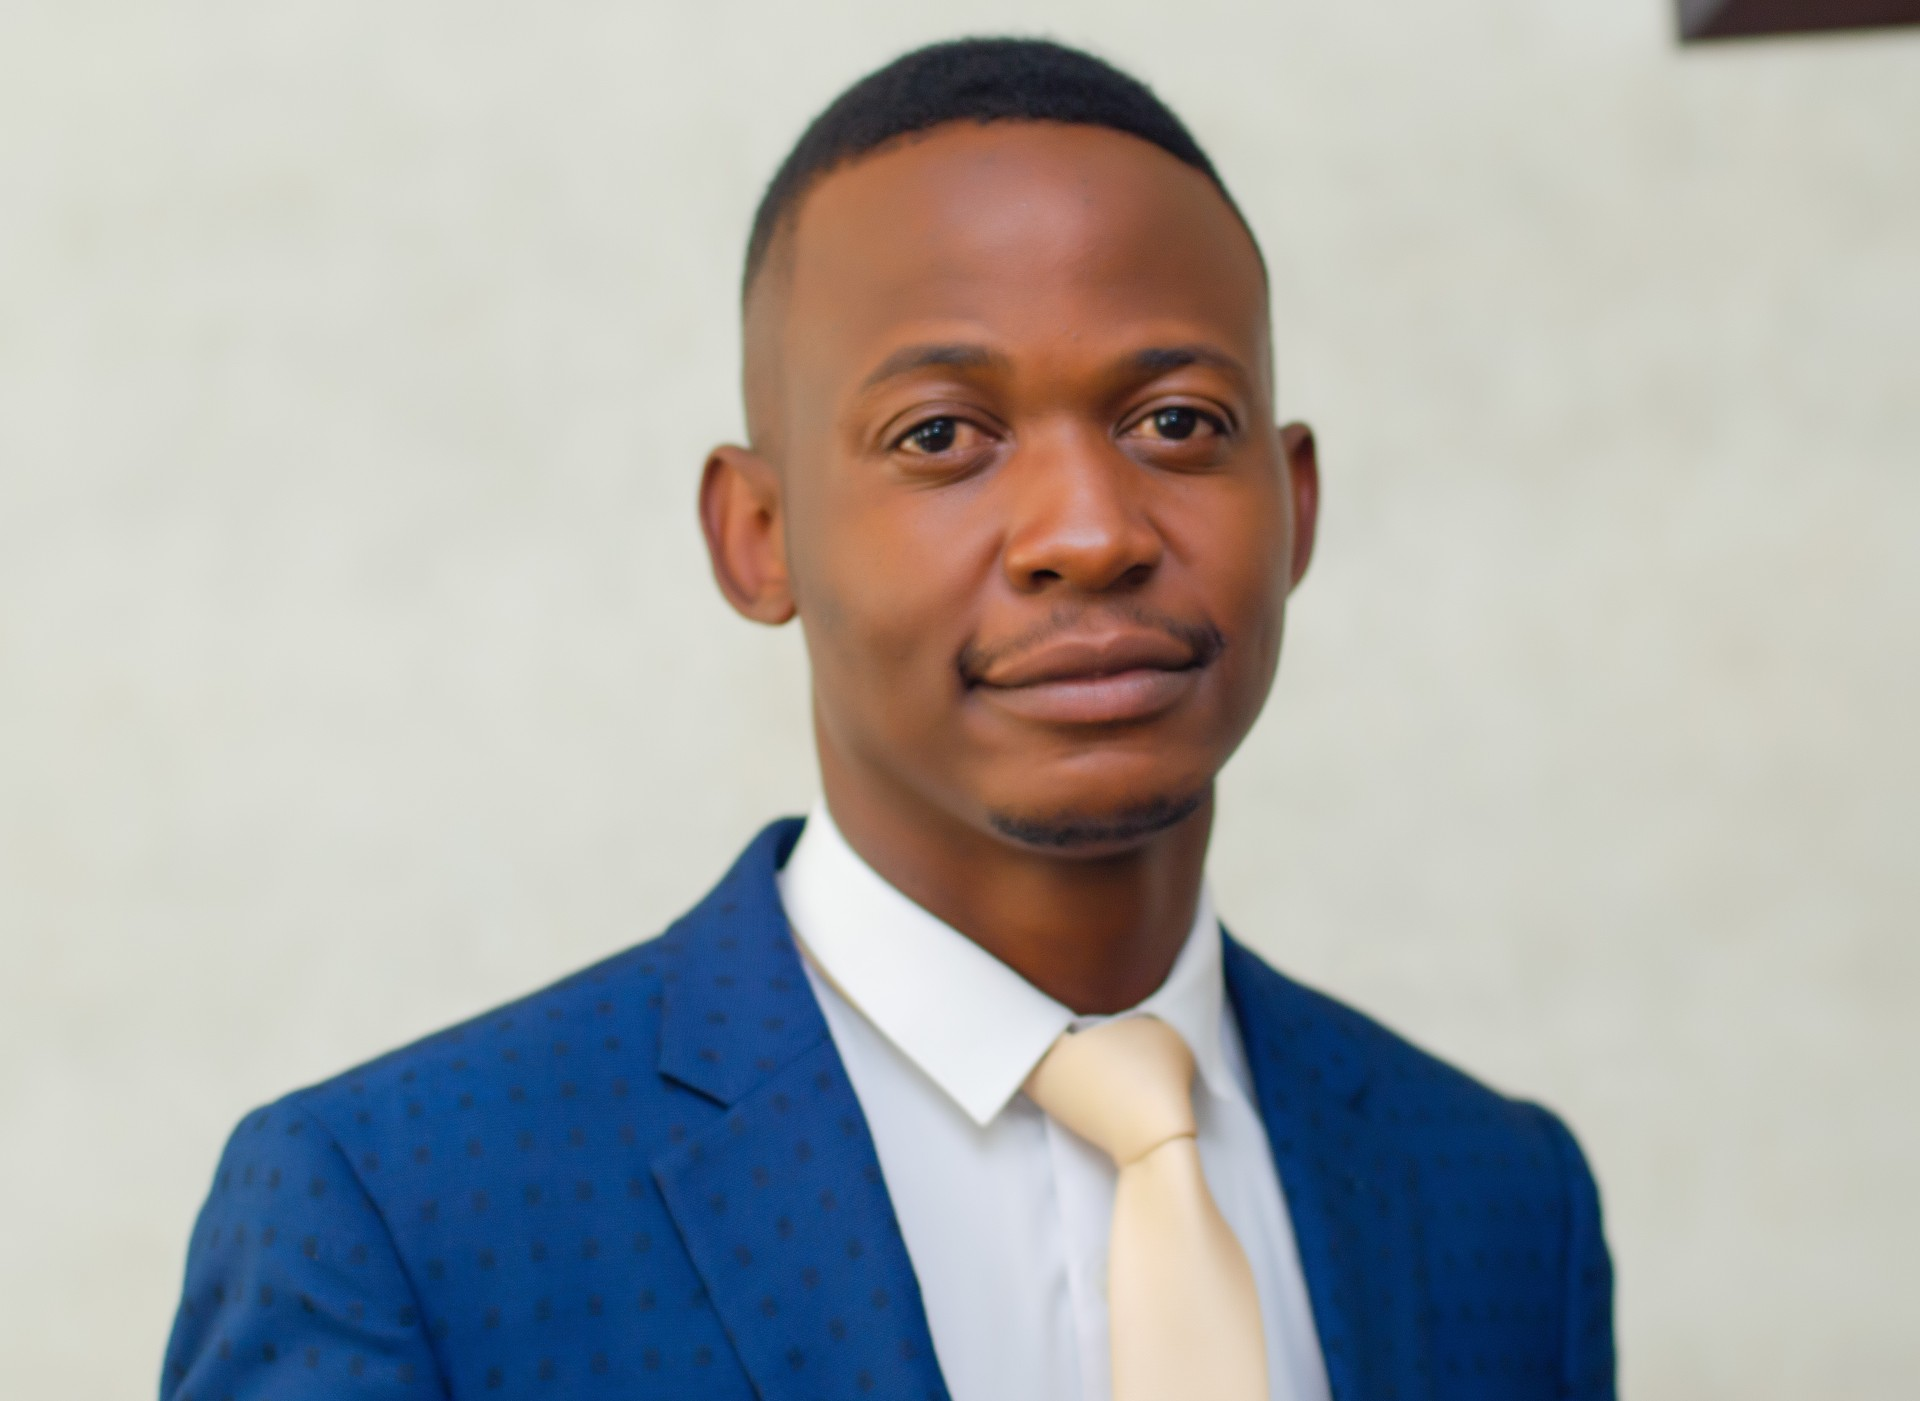 Lincoln Masiyenyama's Profile -  'Young Corporate Director Of The Year - Best Startup Company'